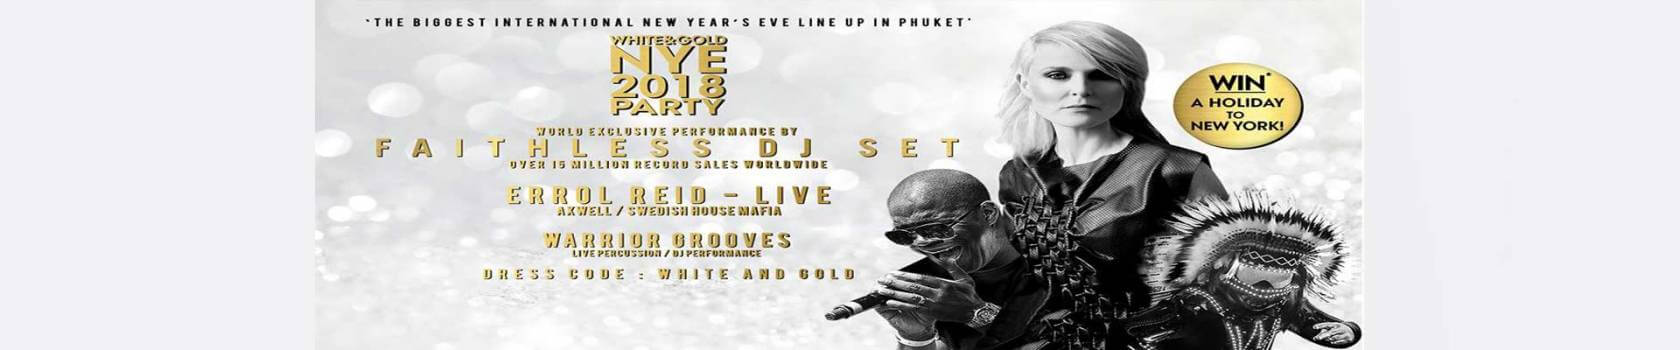 White & Gold NYE Countdown Party at Dream Beach Club